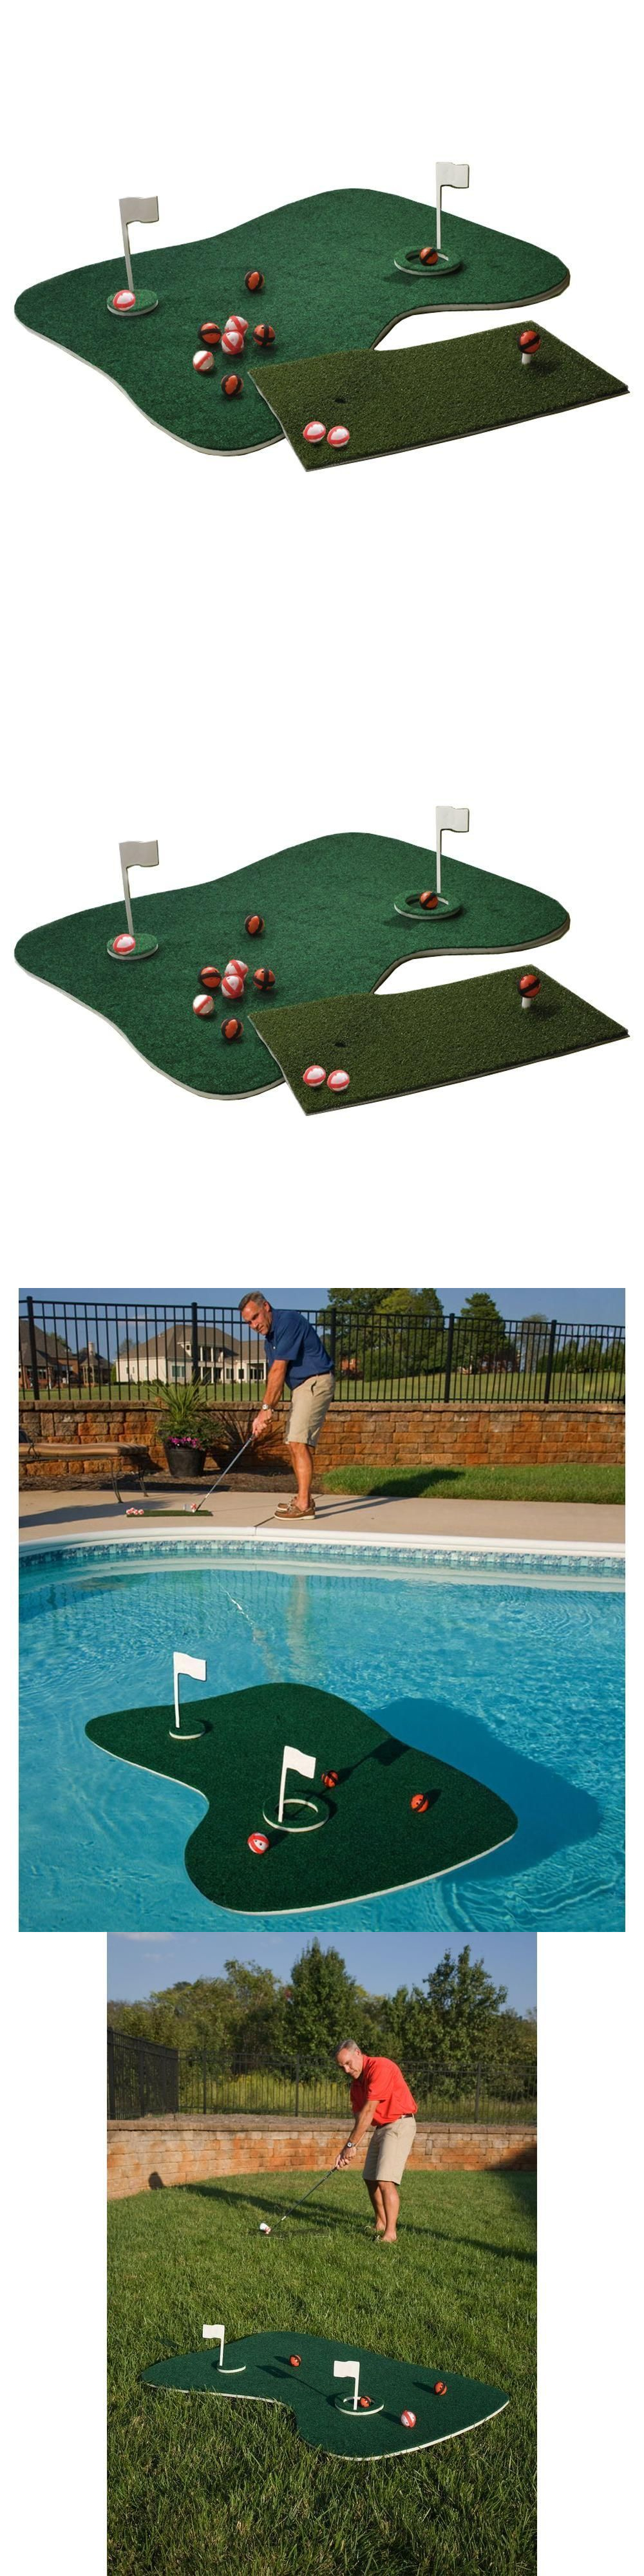 other sand and water toys 11745 backyard golf game swimming pool